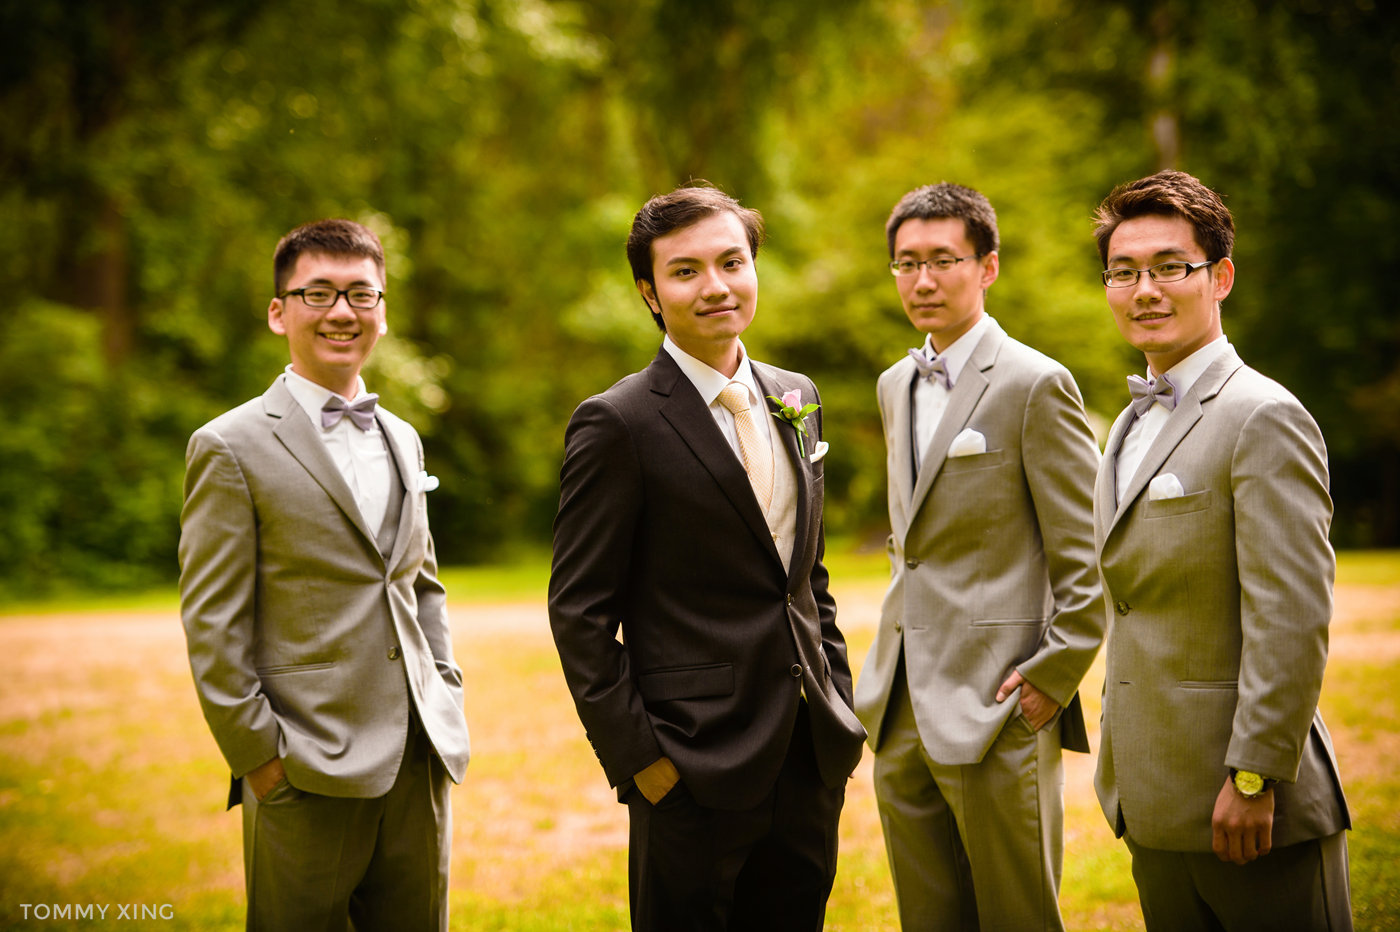 Seattle Wedding and pre wedding Los Angeles Tommy Xing Photography 西雅图洛杉矶旧金山婚礼婚纱照摄影师 112.jpg